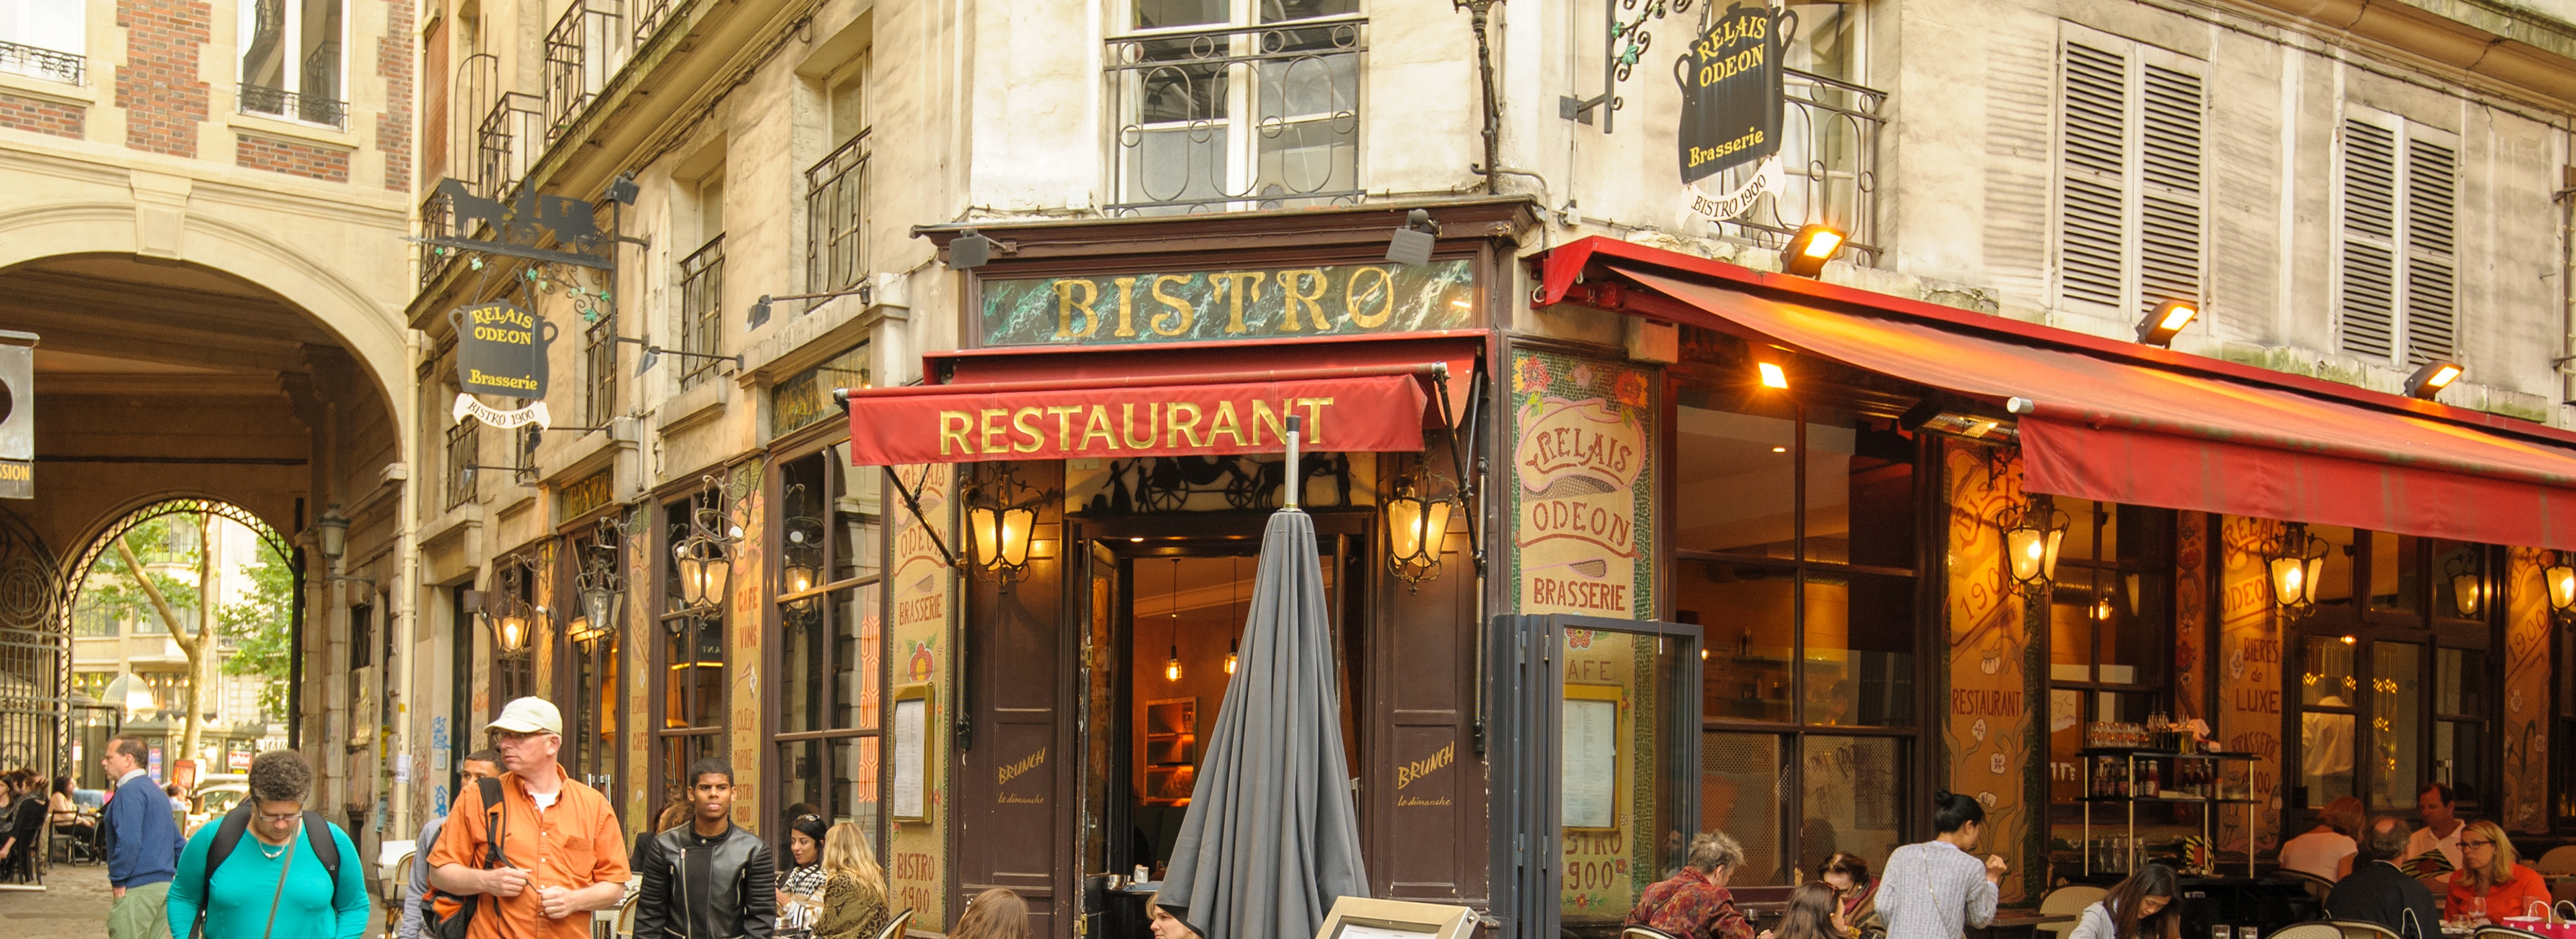 Walking food tour in St germain des prés Paris